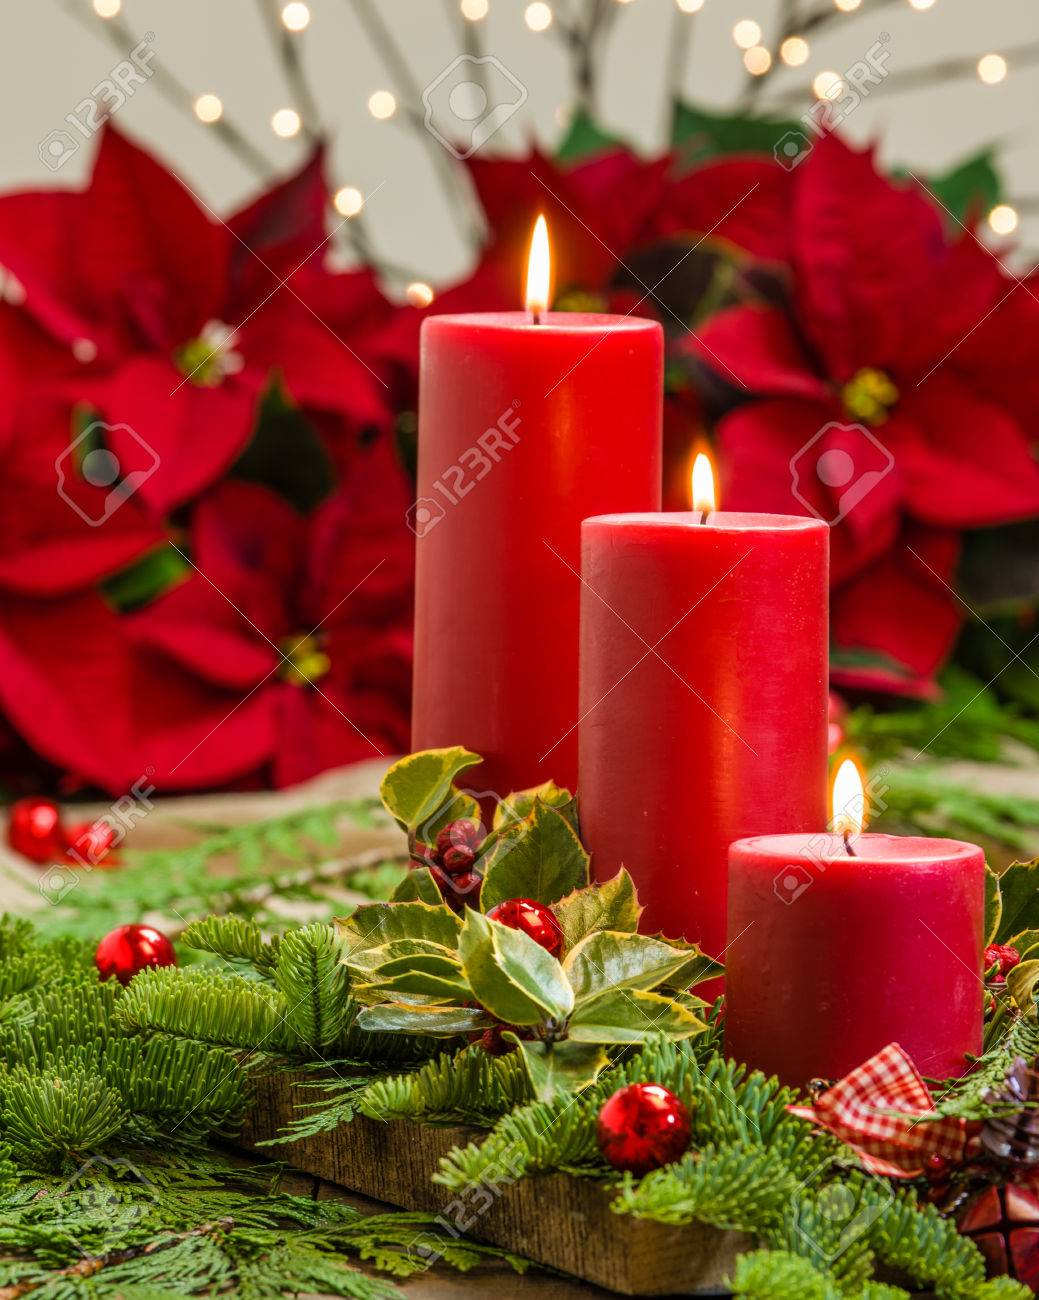 An Evergreen Christmas.Lit Red Candles In An Evergreen Christmas Arrangement